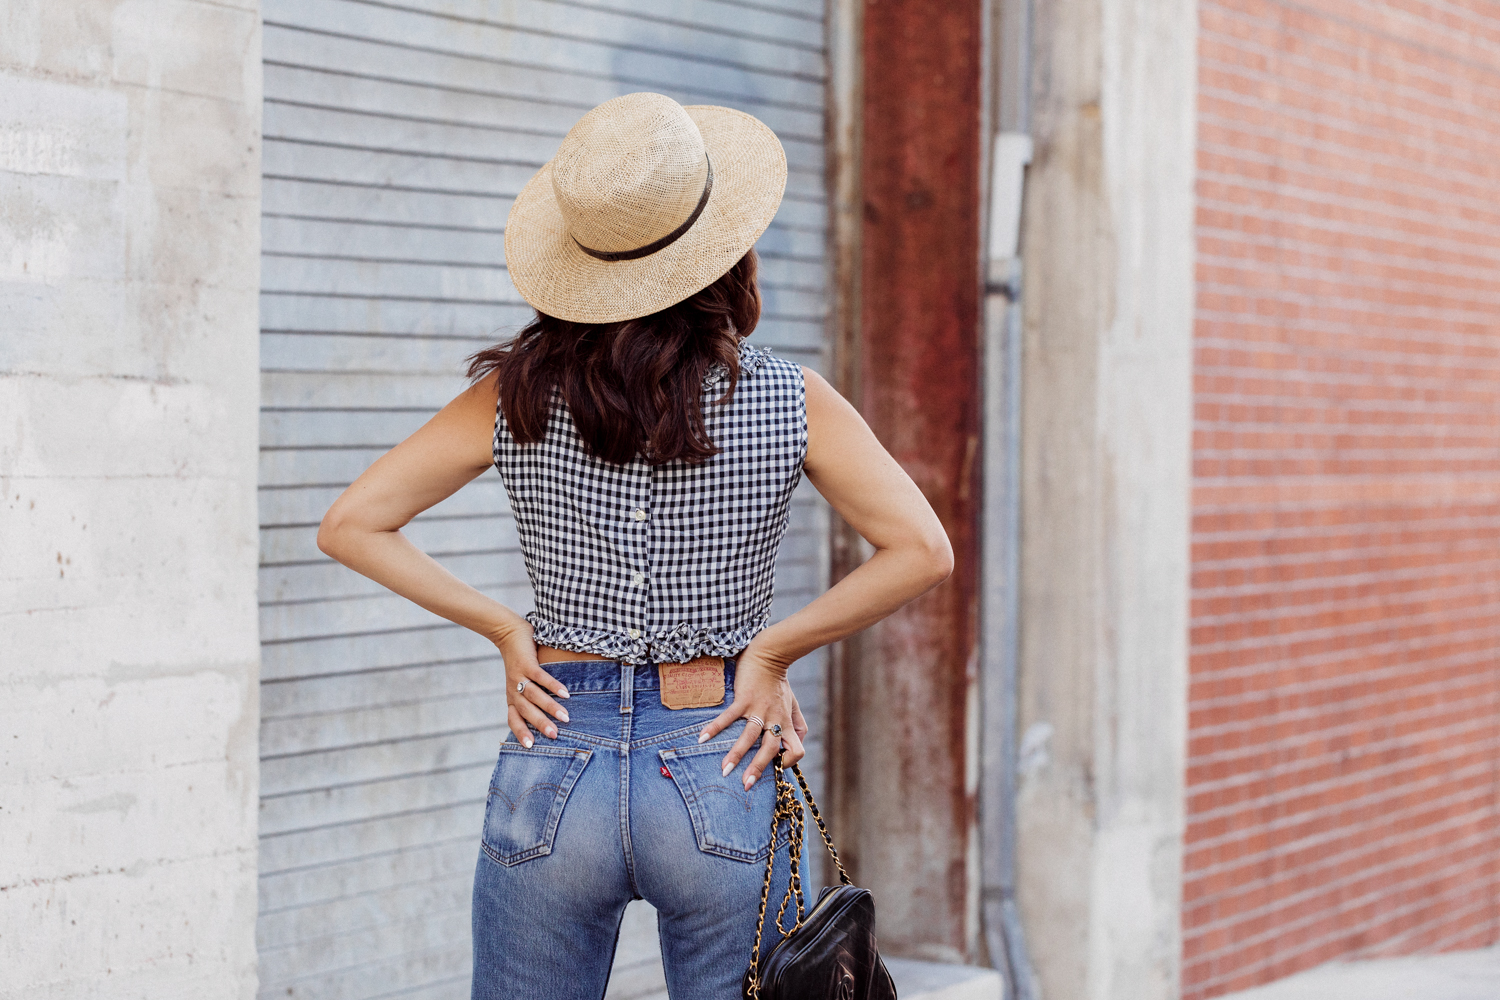 5 jeans that make your butt look good